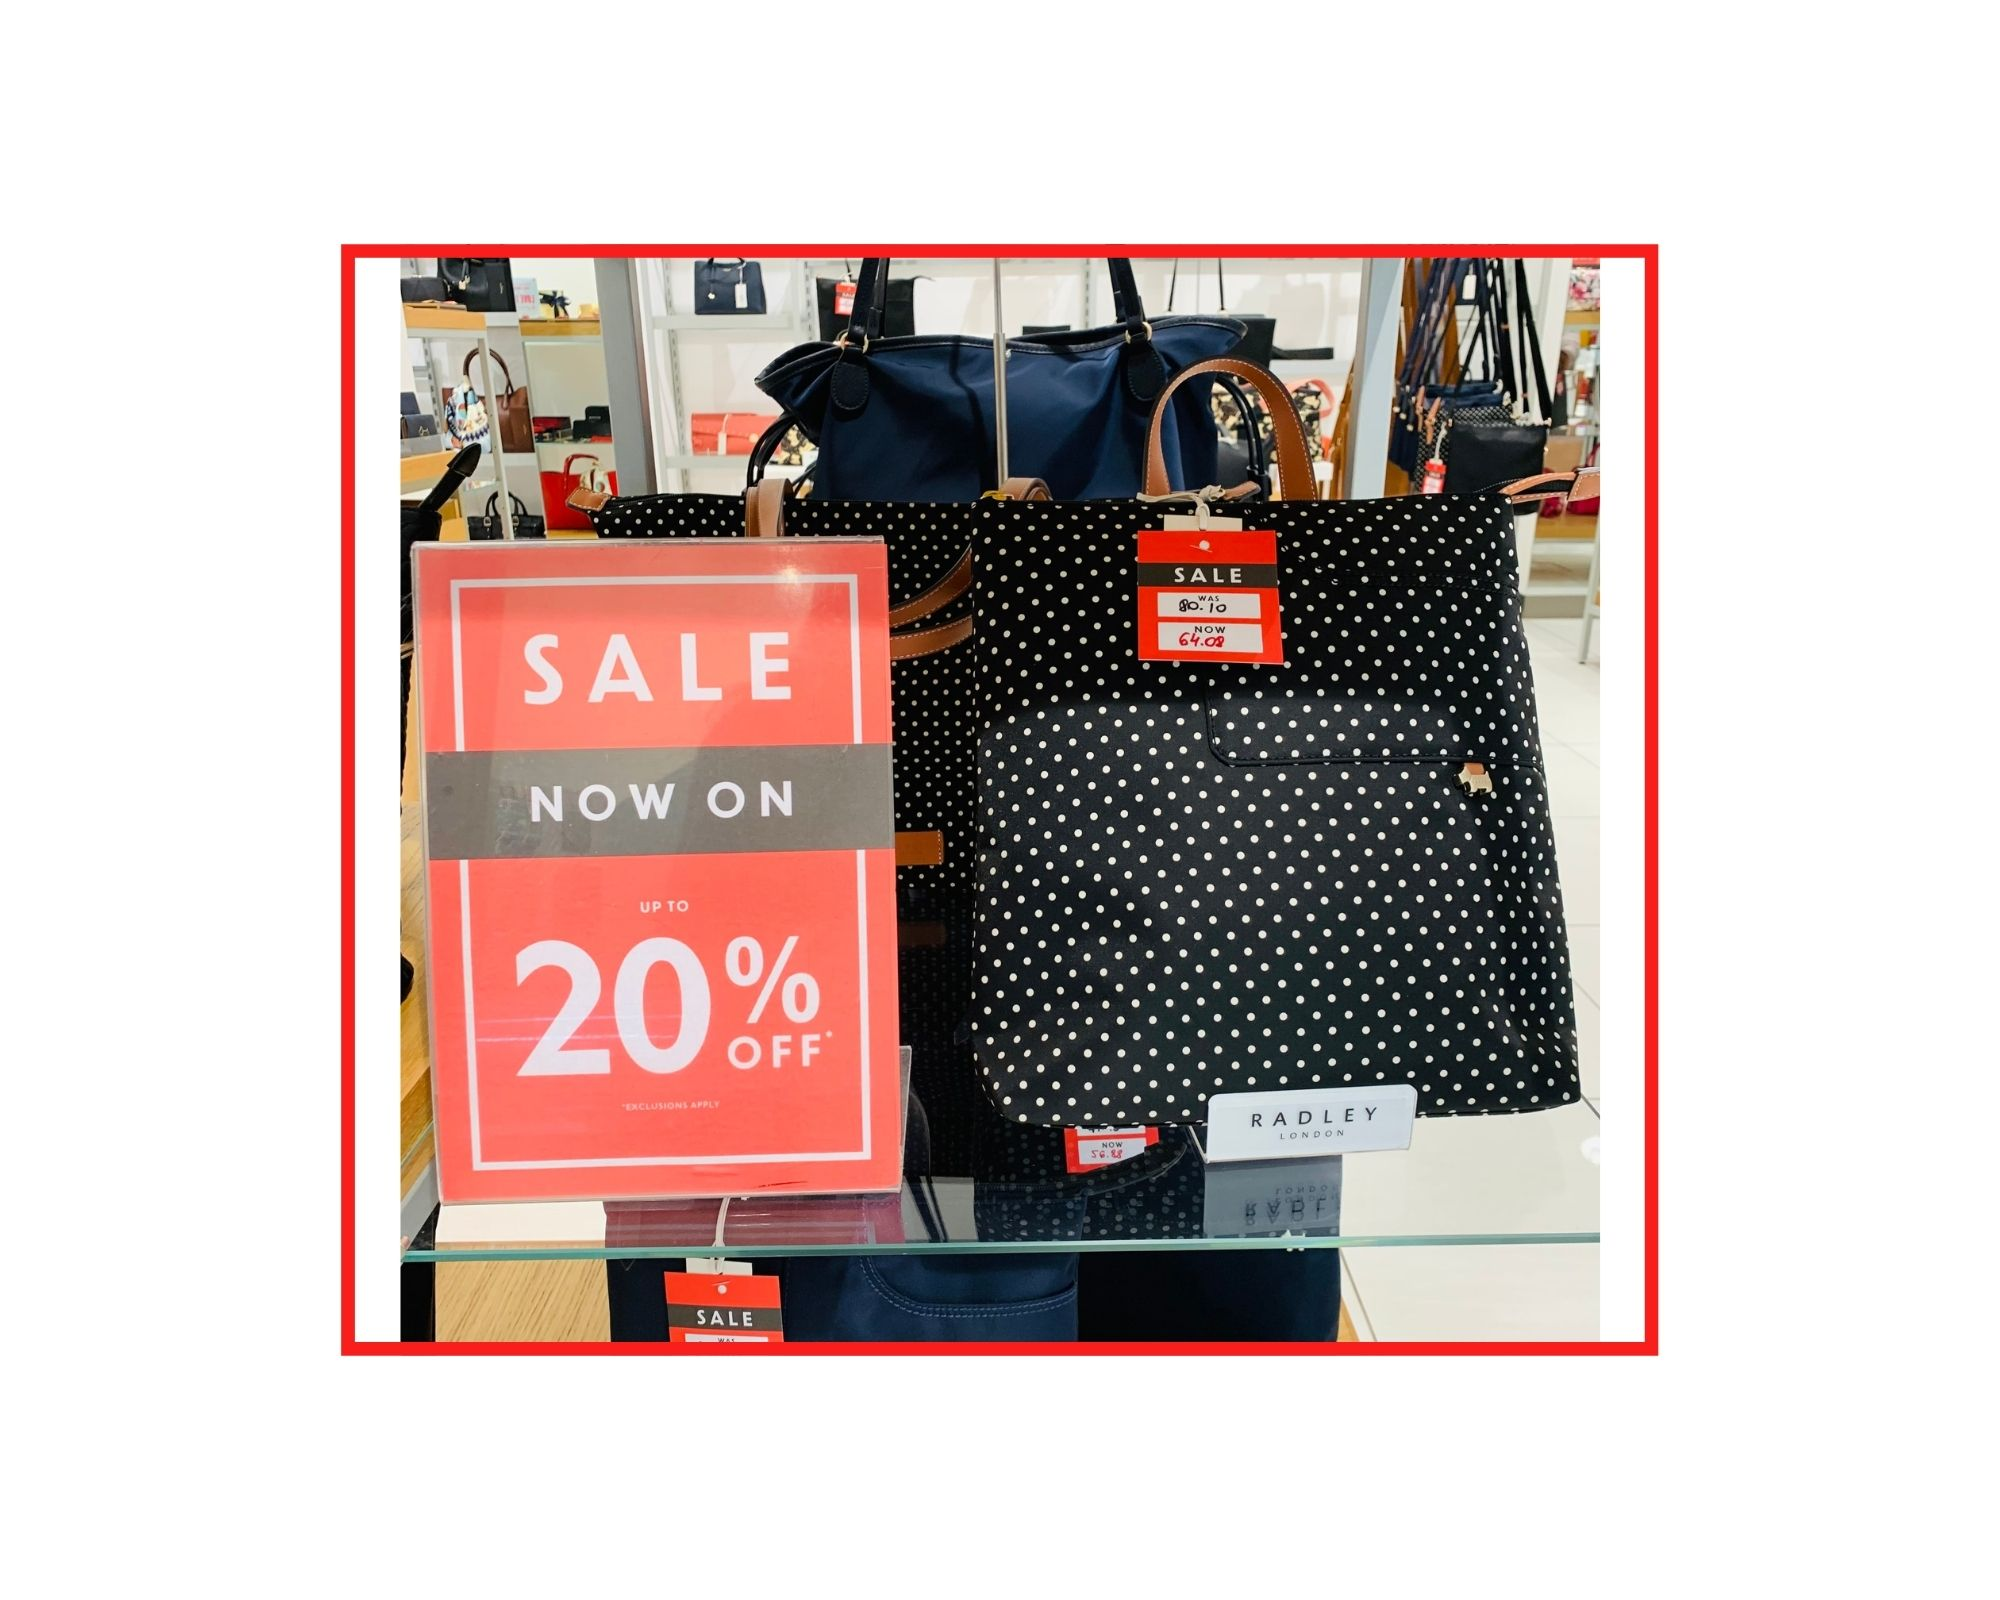 Radley  Pocket Essentials Bag  UK £89 | JSY Was £80.10 | NOW £64.08